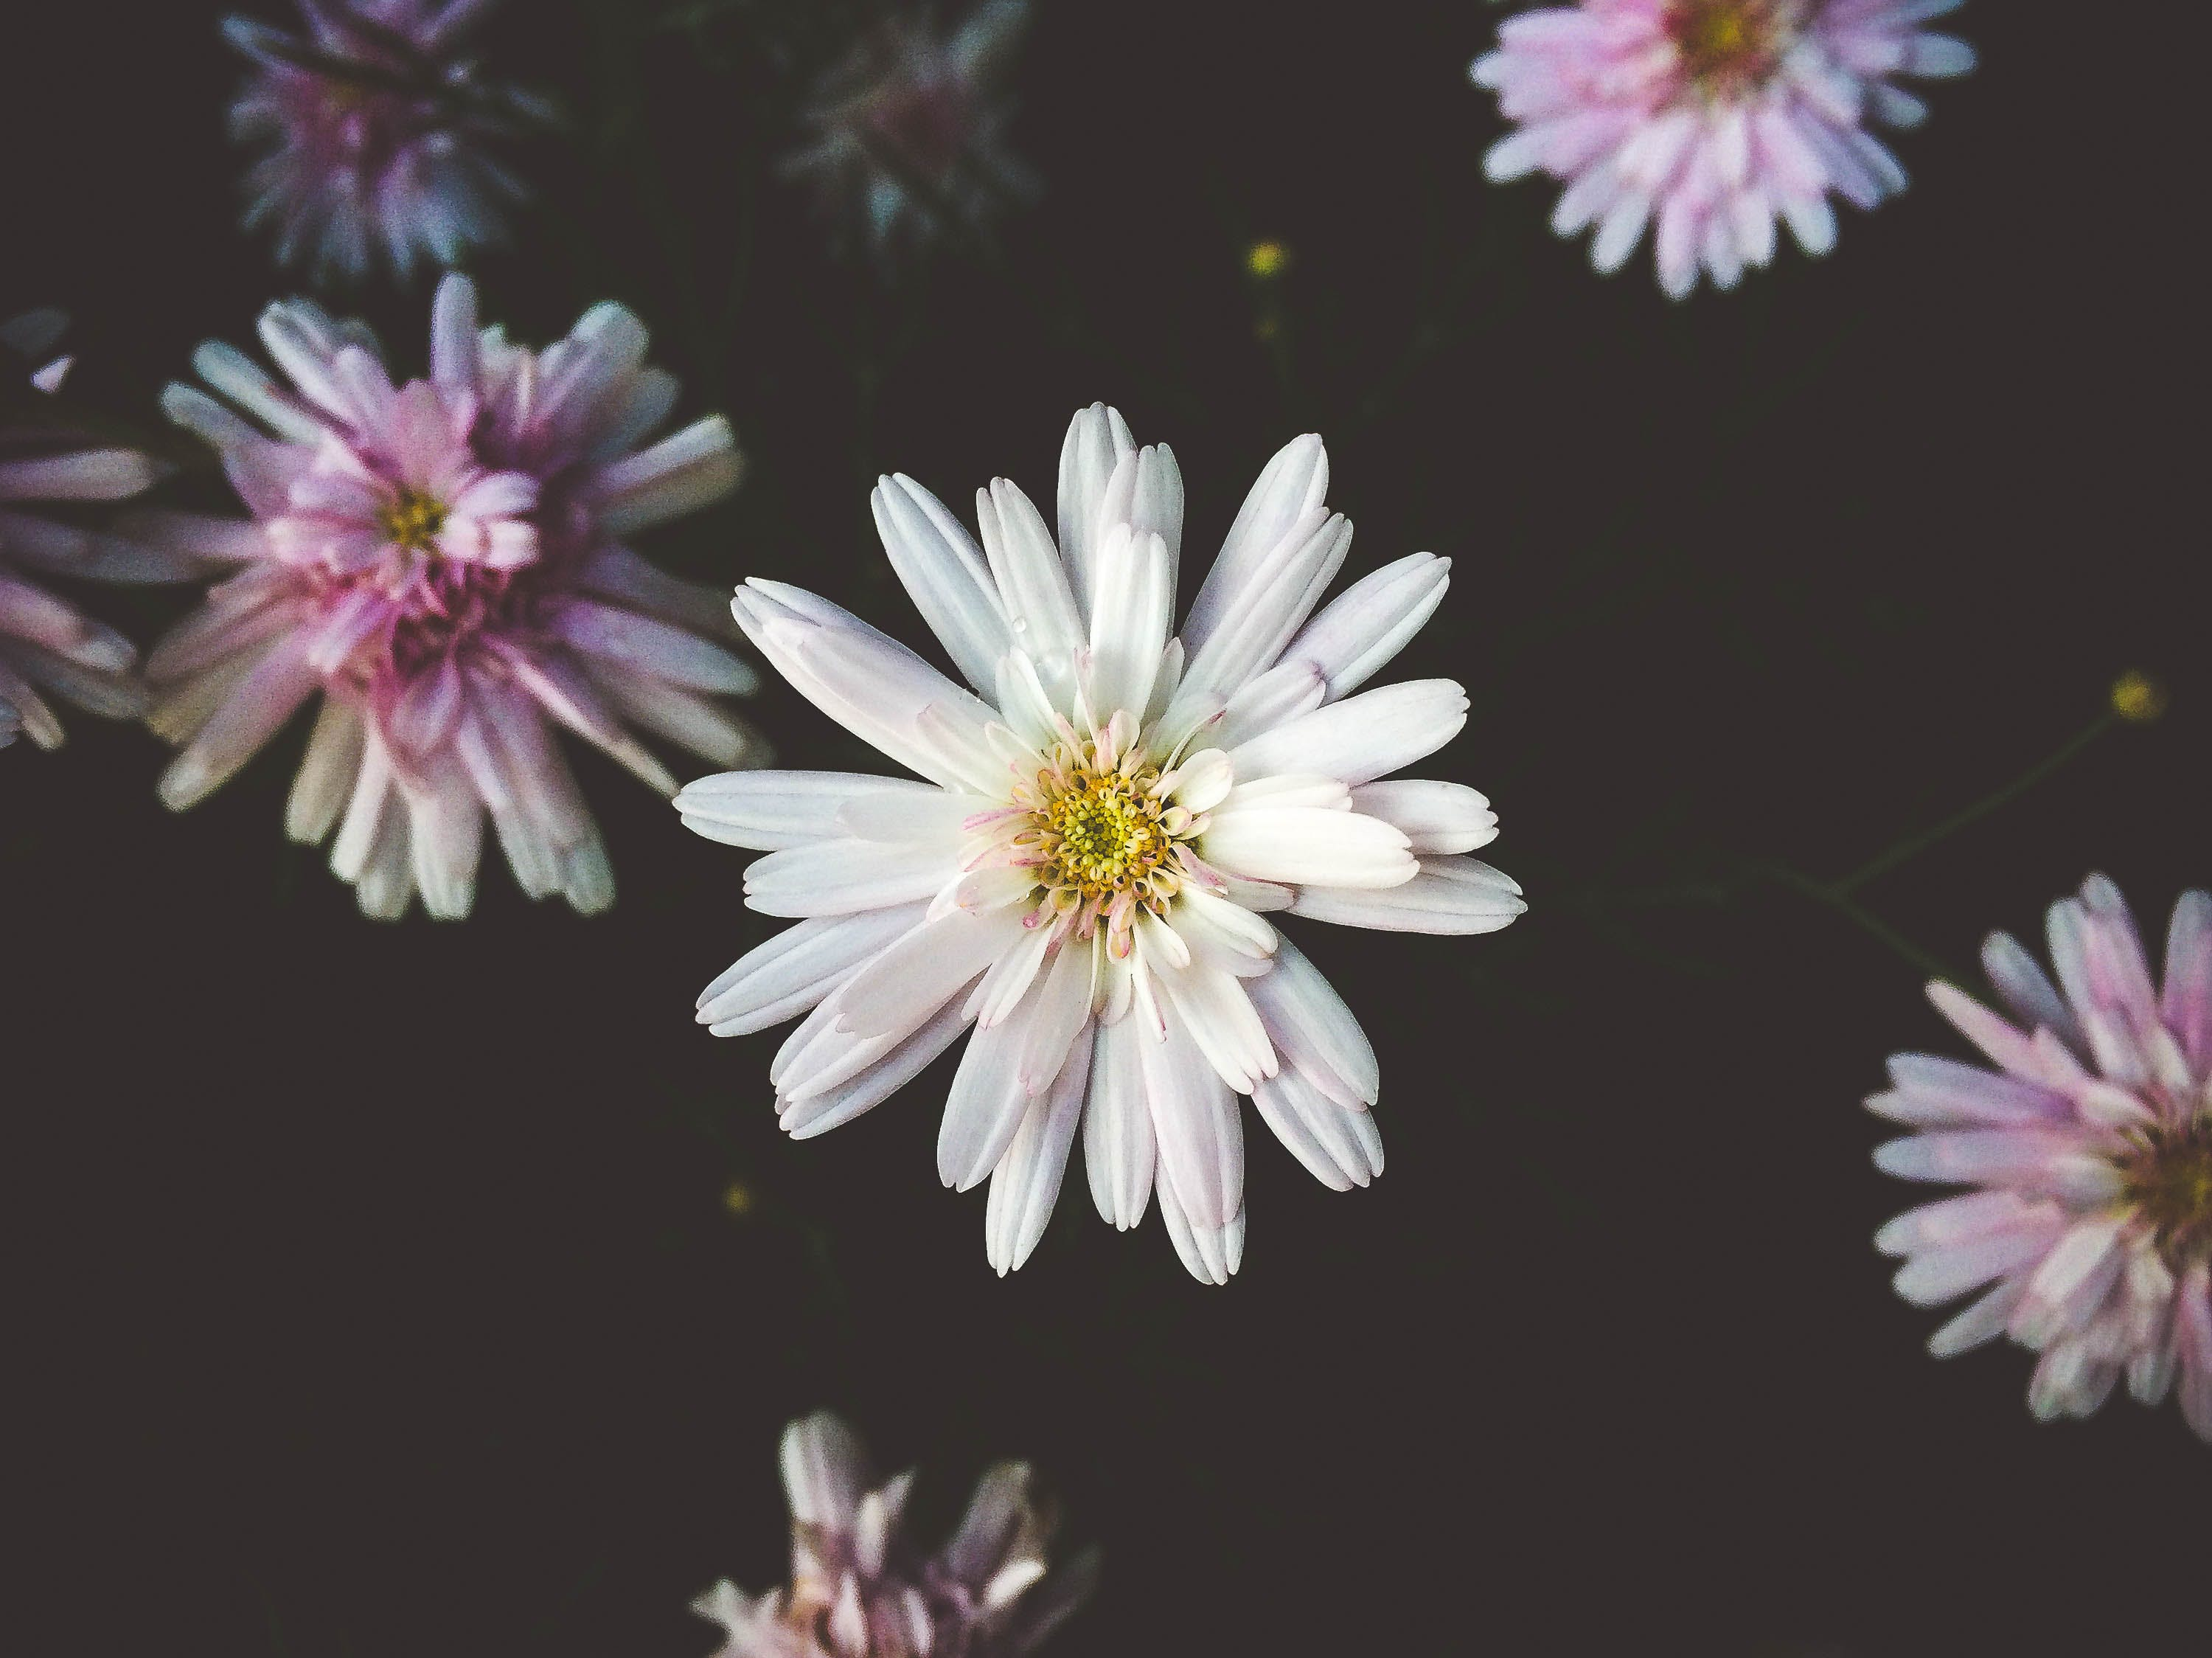 White and Pink Petaled Flowers in Bloom